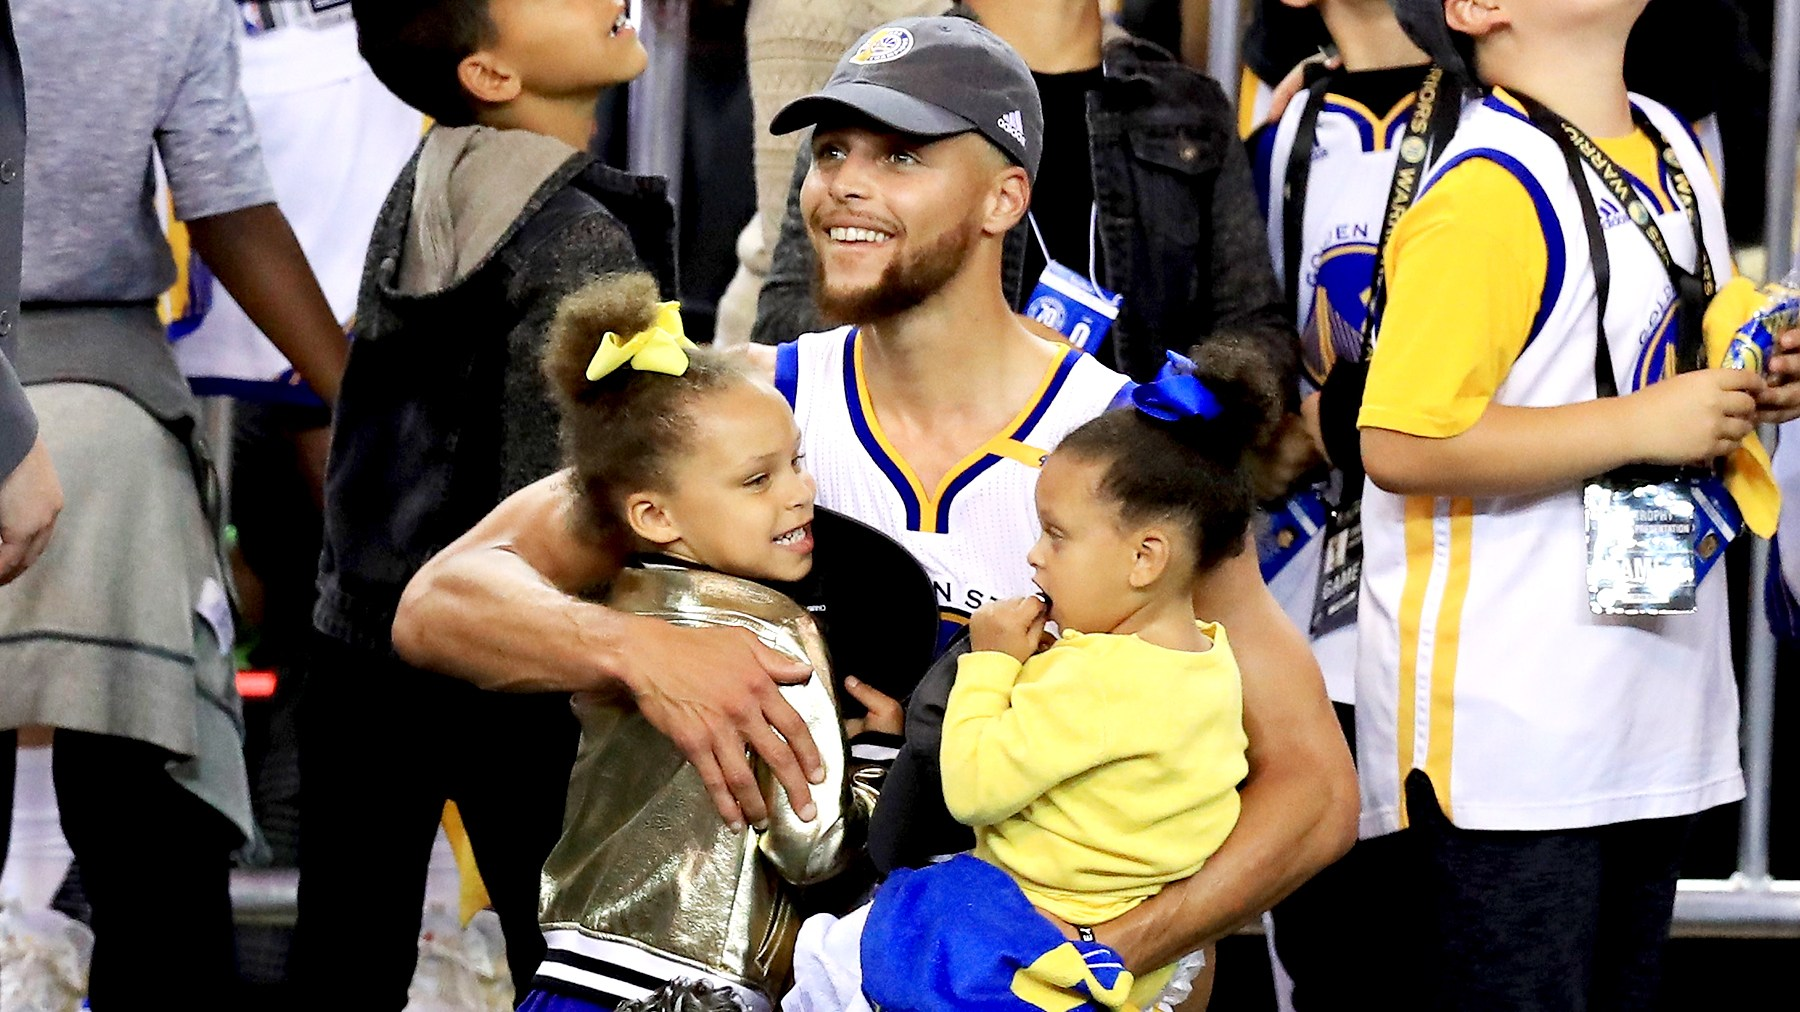 Stephen Curry #30 of the Golden State Warriors celebrates holding his daughters Riley and Ryan after defeating the Cleveland Cavaliers 129-120 in Game 5 to win the 2017 NBA Finals at ORACLE Arena on June 12, 2017 in Oakland, California.